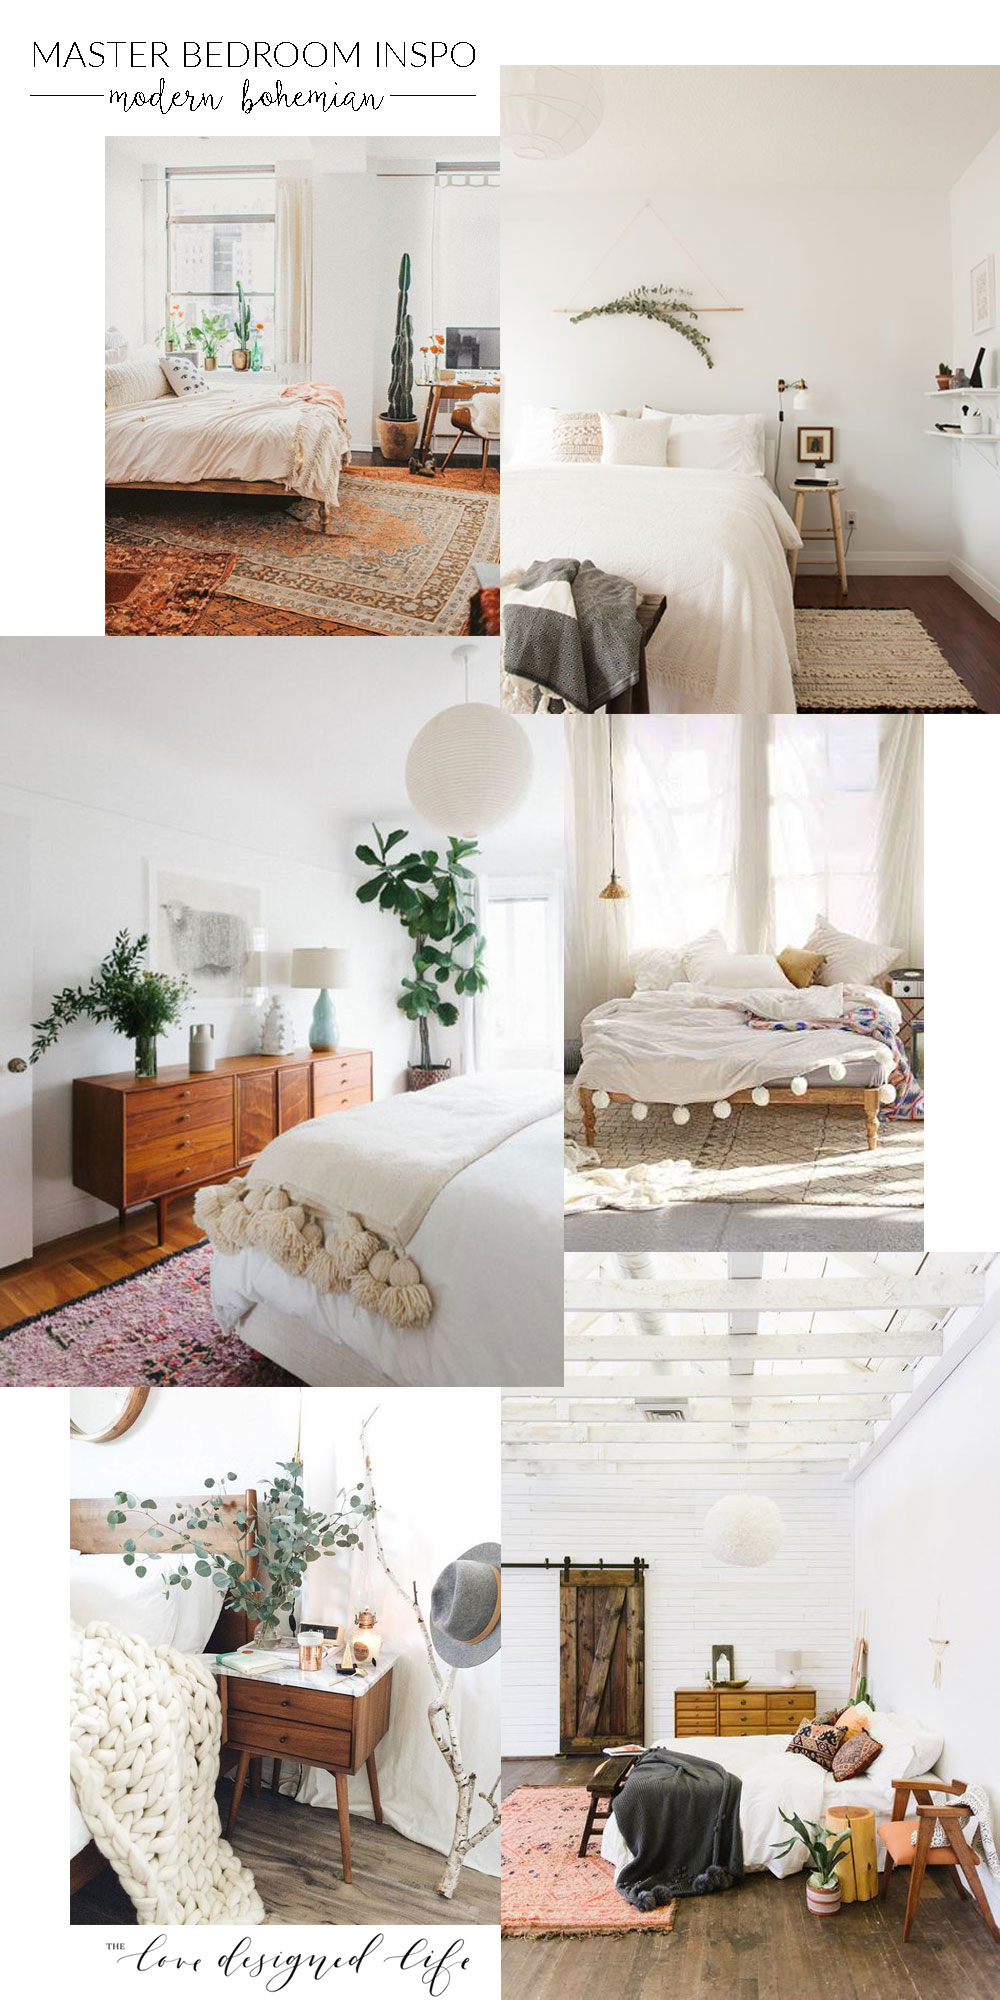 modern bohemian master bedroom inspiration | thelovedesignedlife.com #homedesign #modernbohemian #masterbedroom